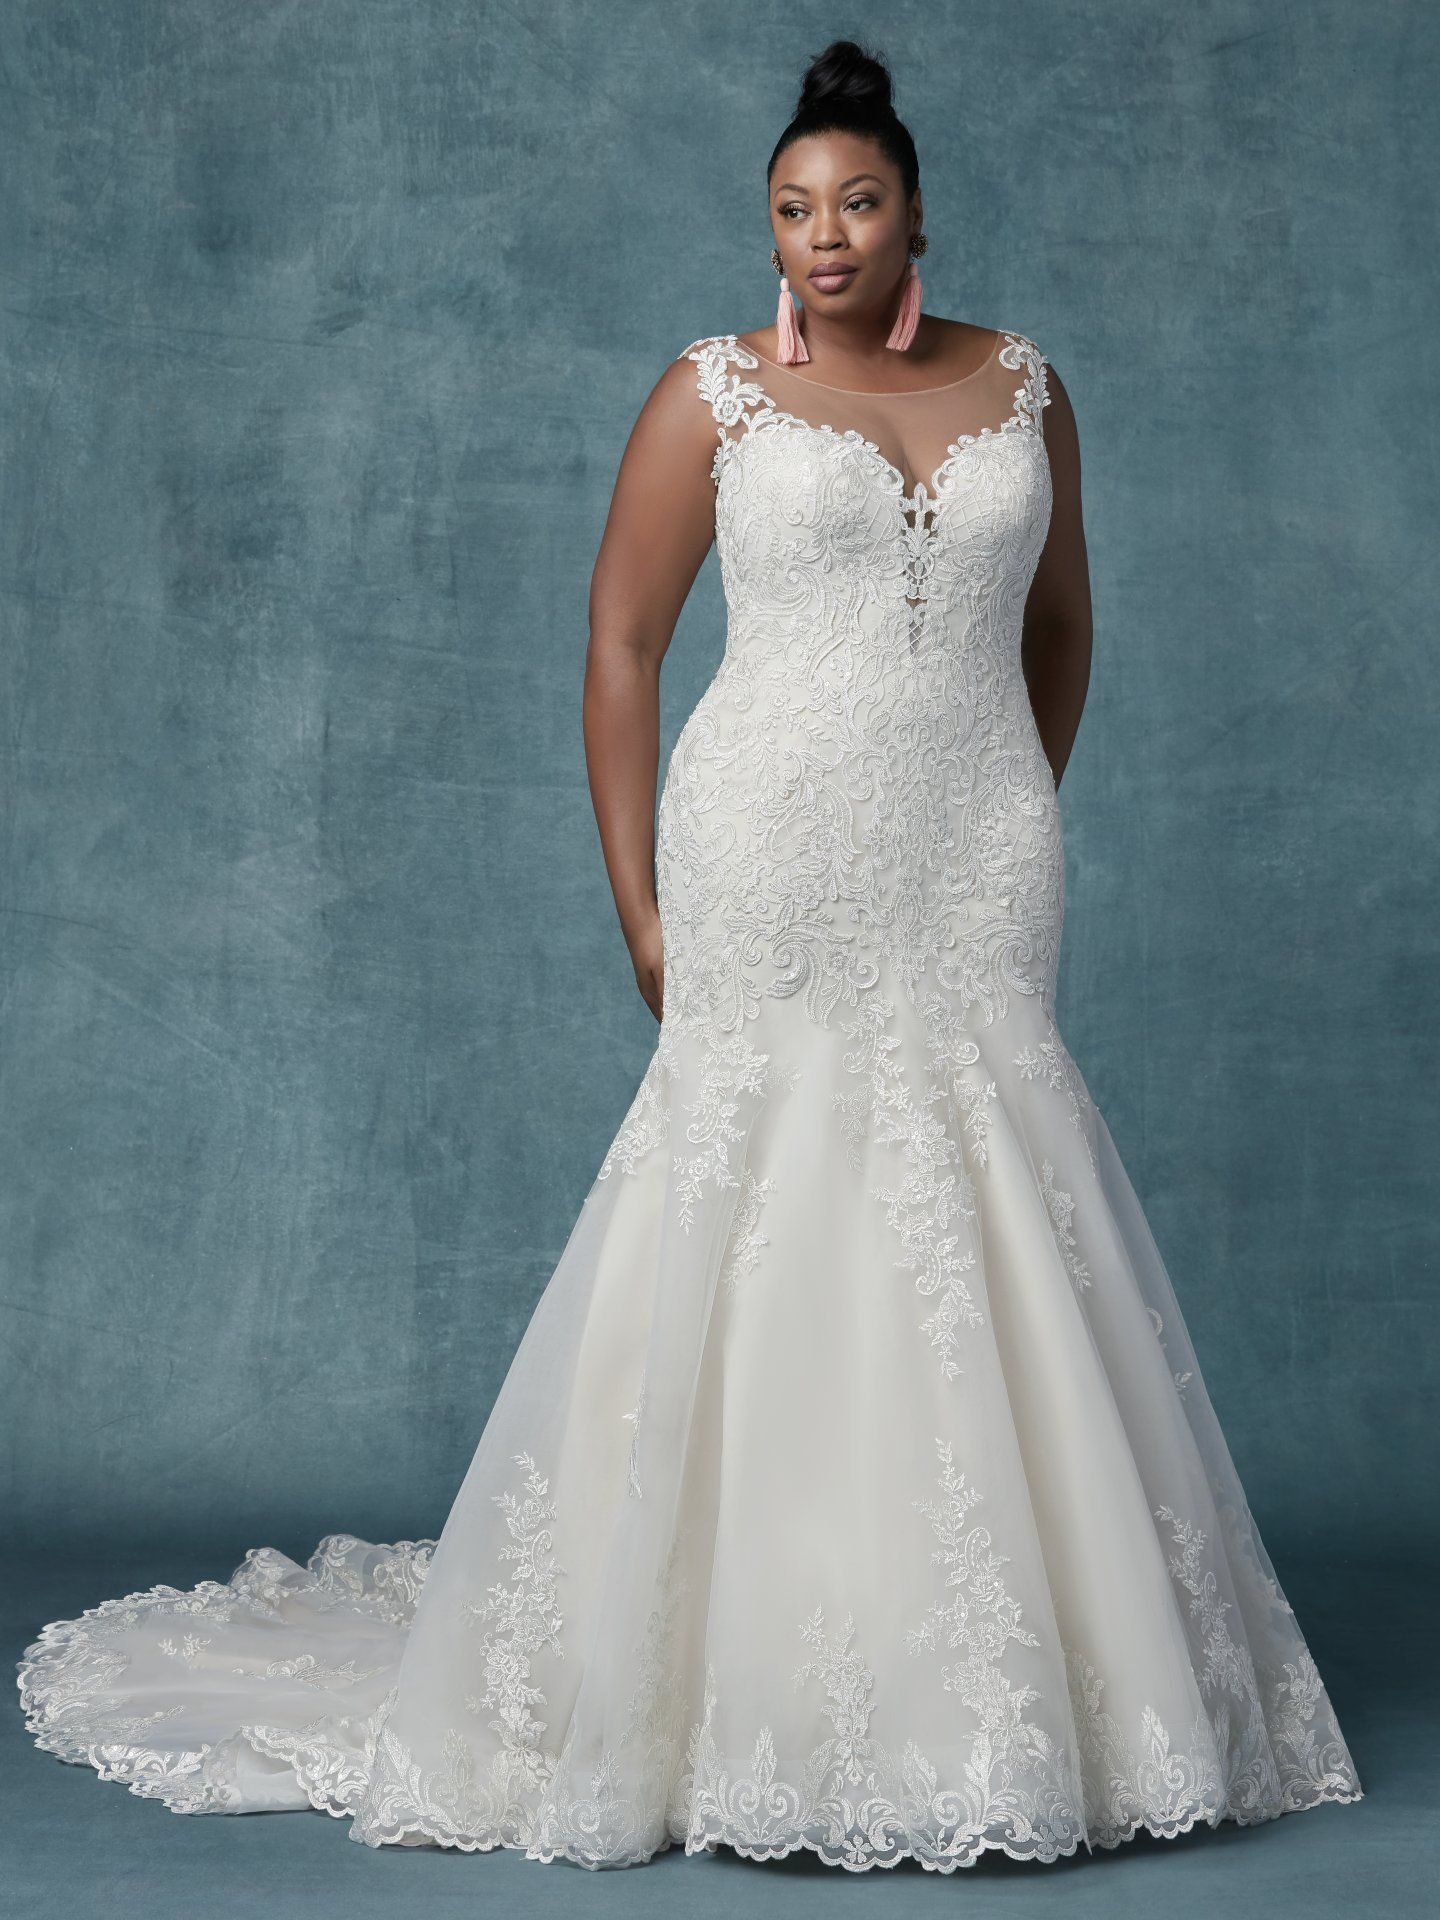 Plus Size Wedding Dress Sample Size 20 Inventory 2636 Dress Available At Br Sottero Wedding Dress Maggie Sottero Wedding Dresses Plus Size Wedding Gowns [ 1920 x 1440 Pixel ]